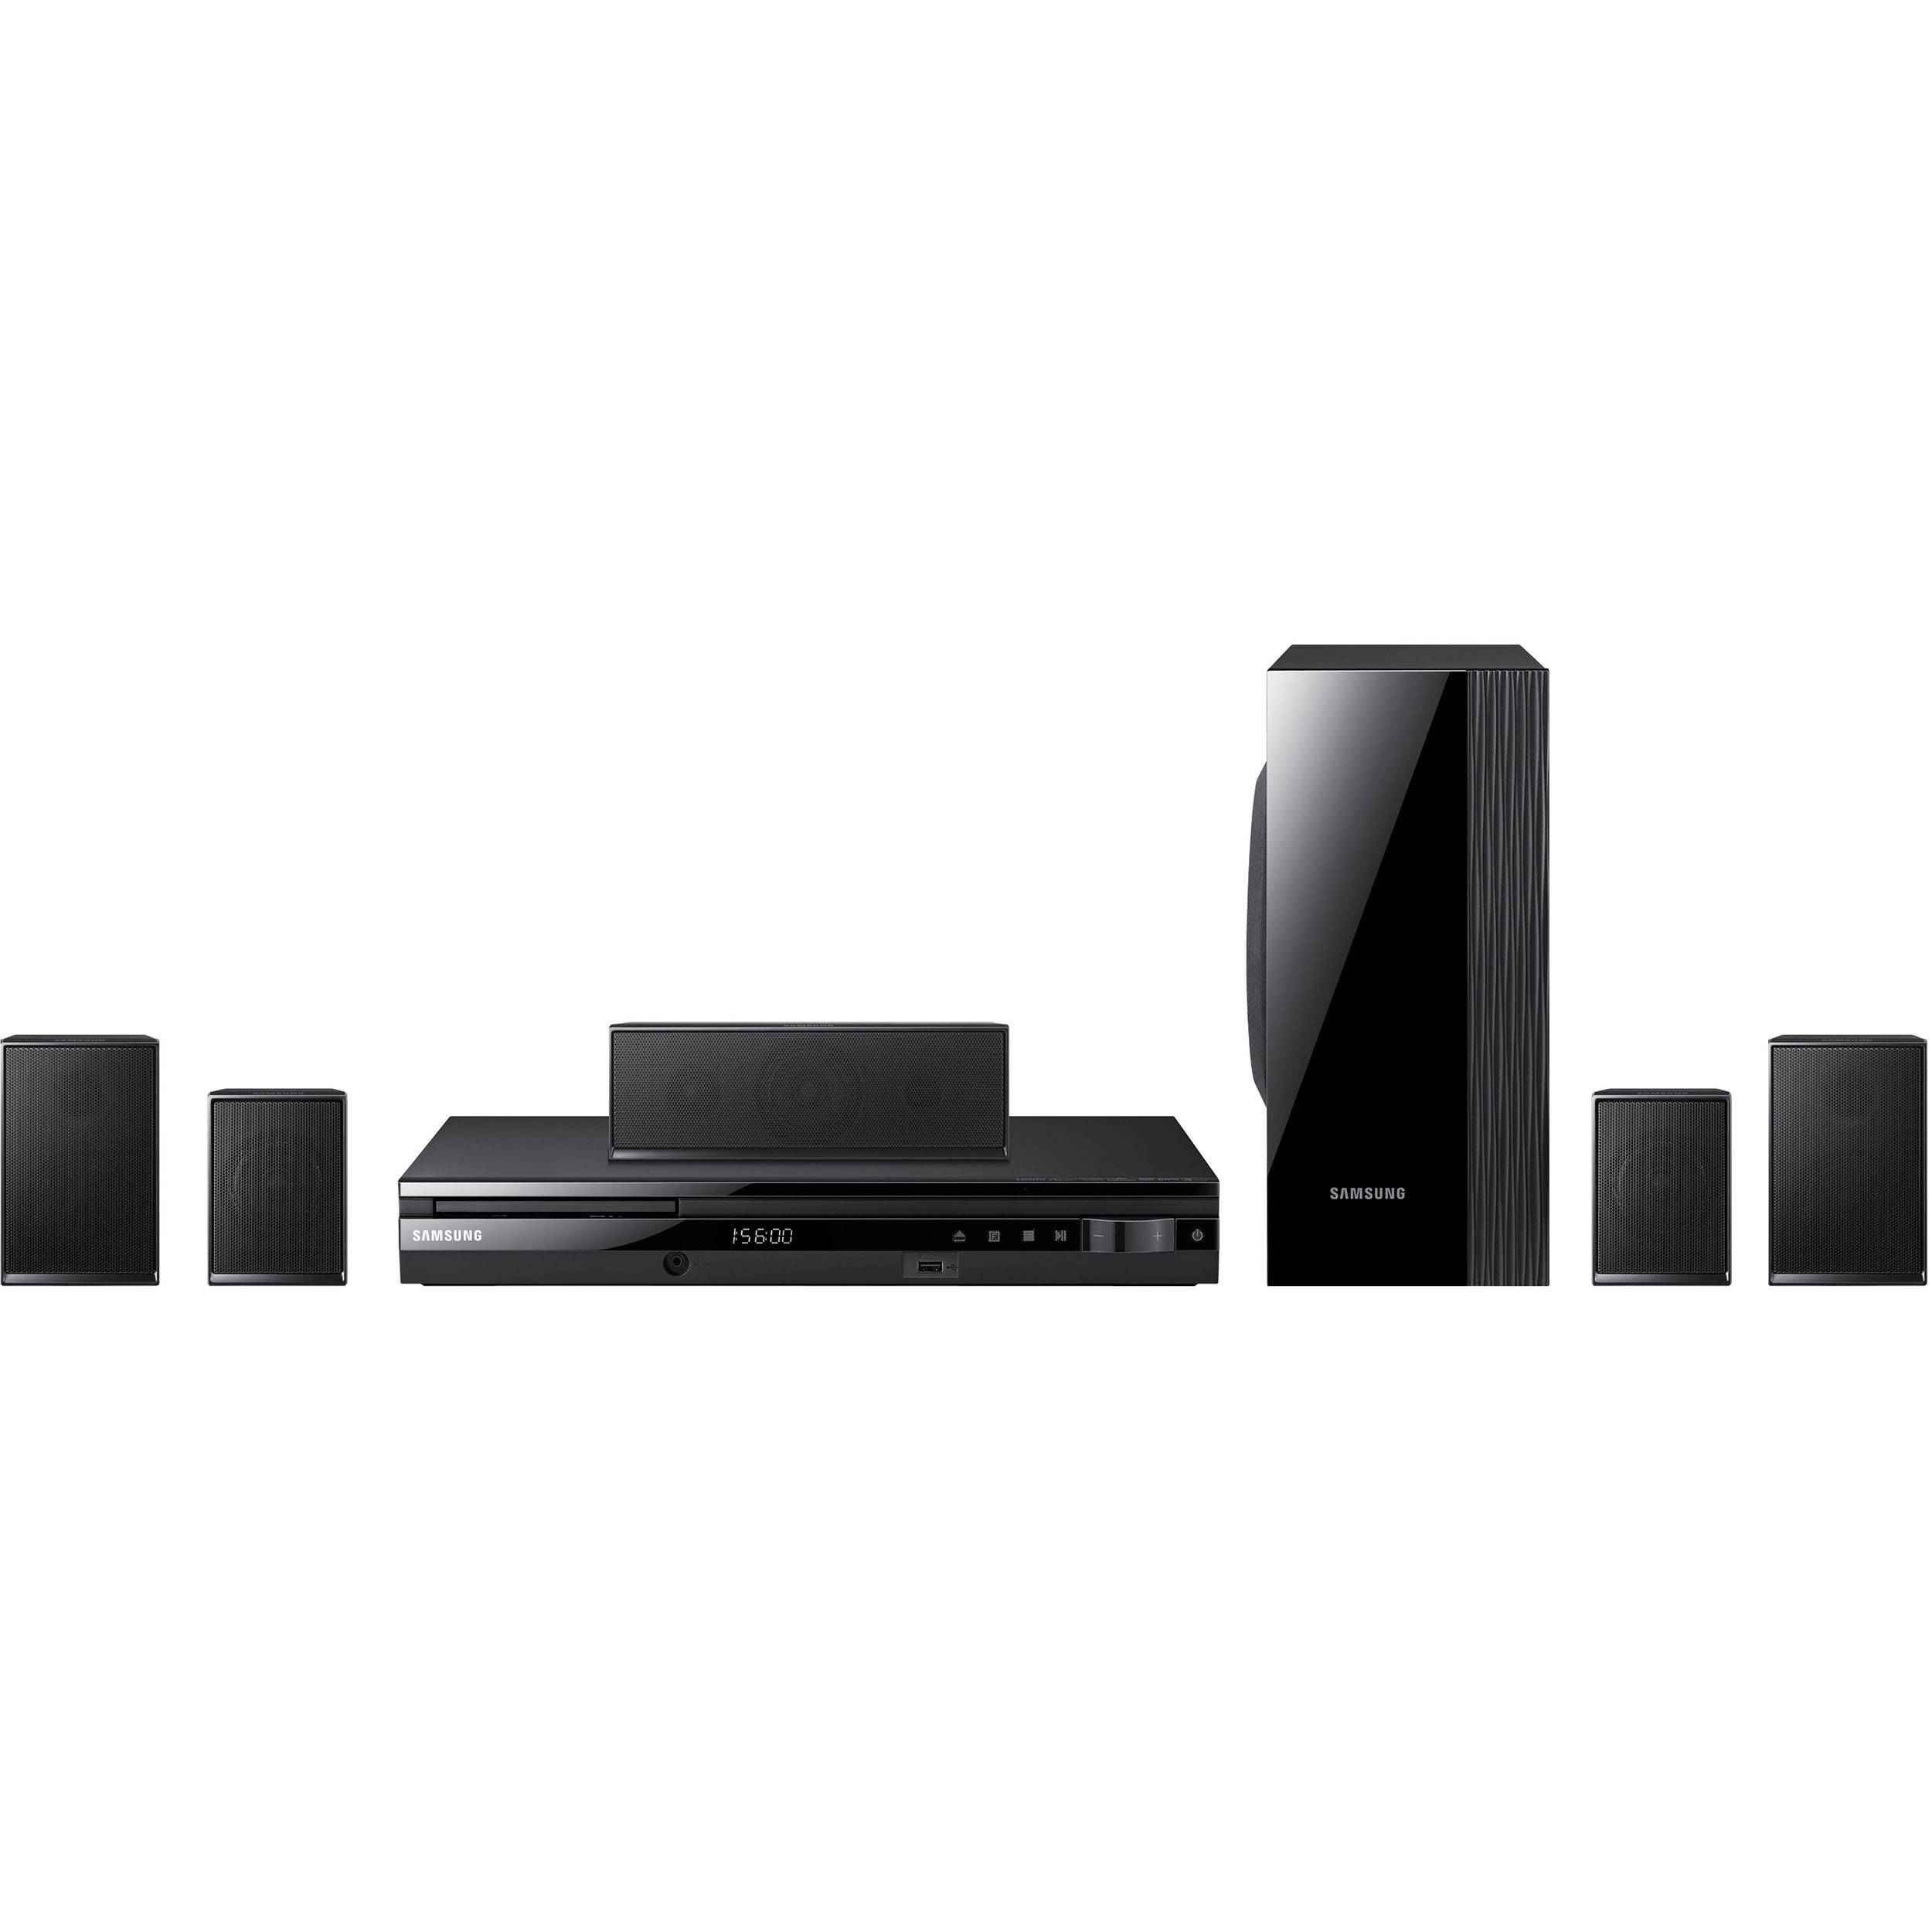 samsung ht e550 digital home entertainment system ht e550 b h. Black Bedroom Furniture Sets. Home Design Ideas